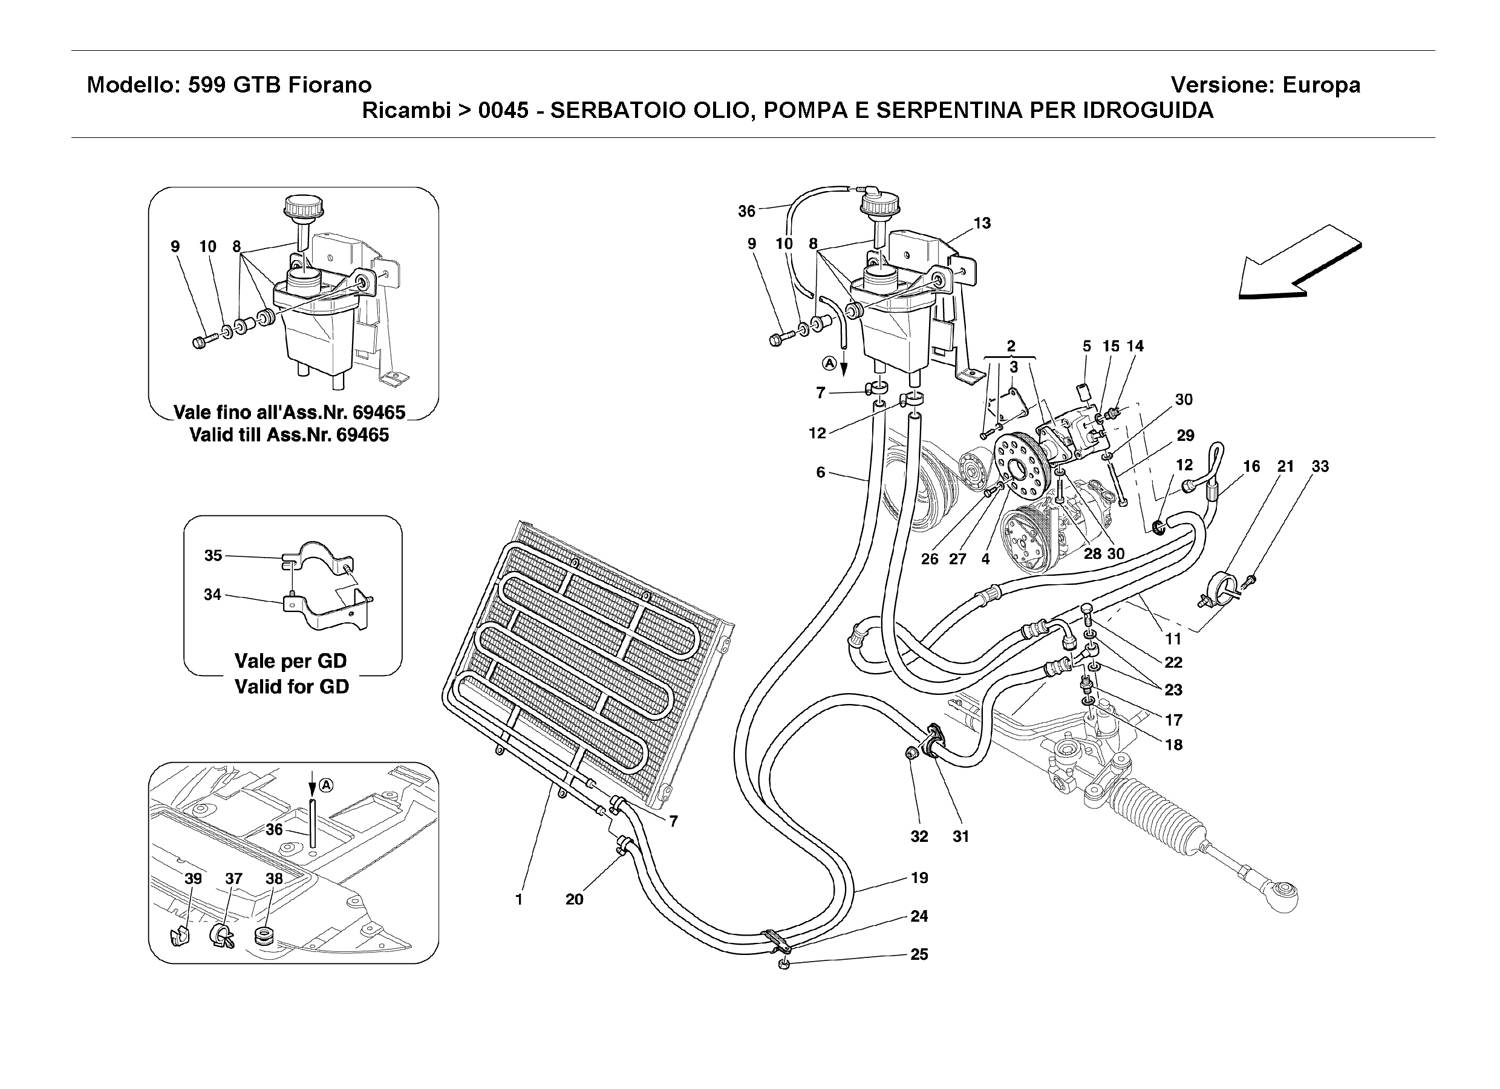 OIL TANK, PUMP AND SERPENTINE FOR SERVOSTEERING